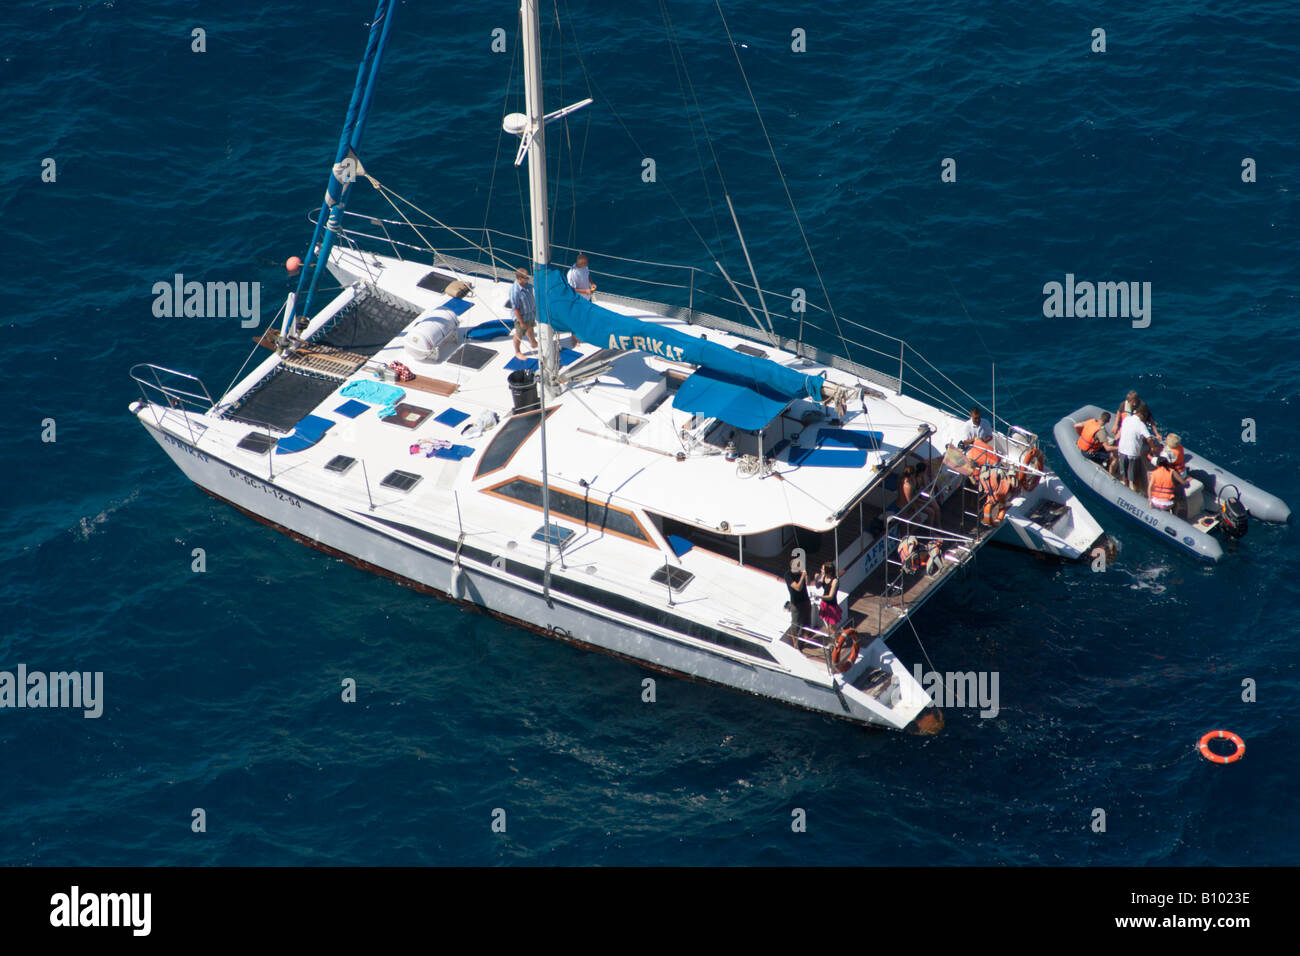 Tourists on catamaran anchored near Puerto de Mogan on Gran Canaria in The canary islands - Stock Image